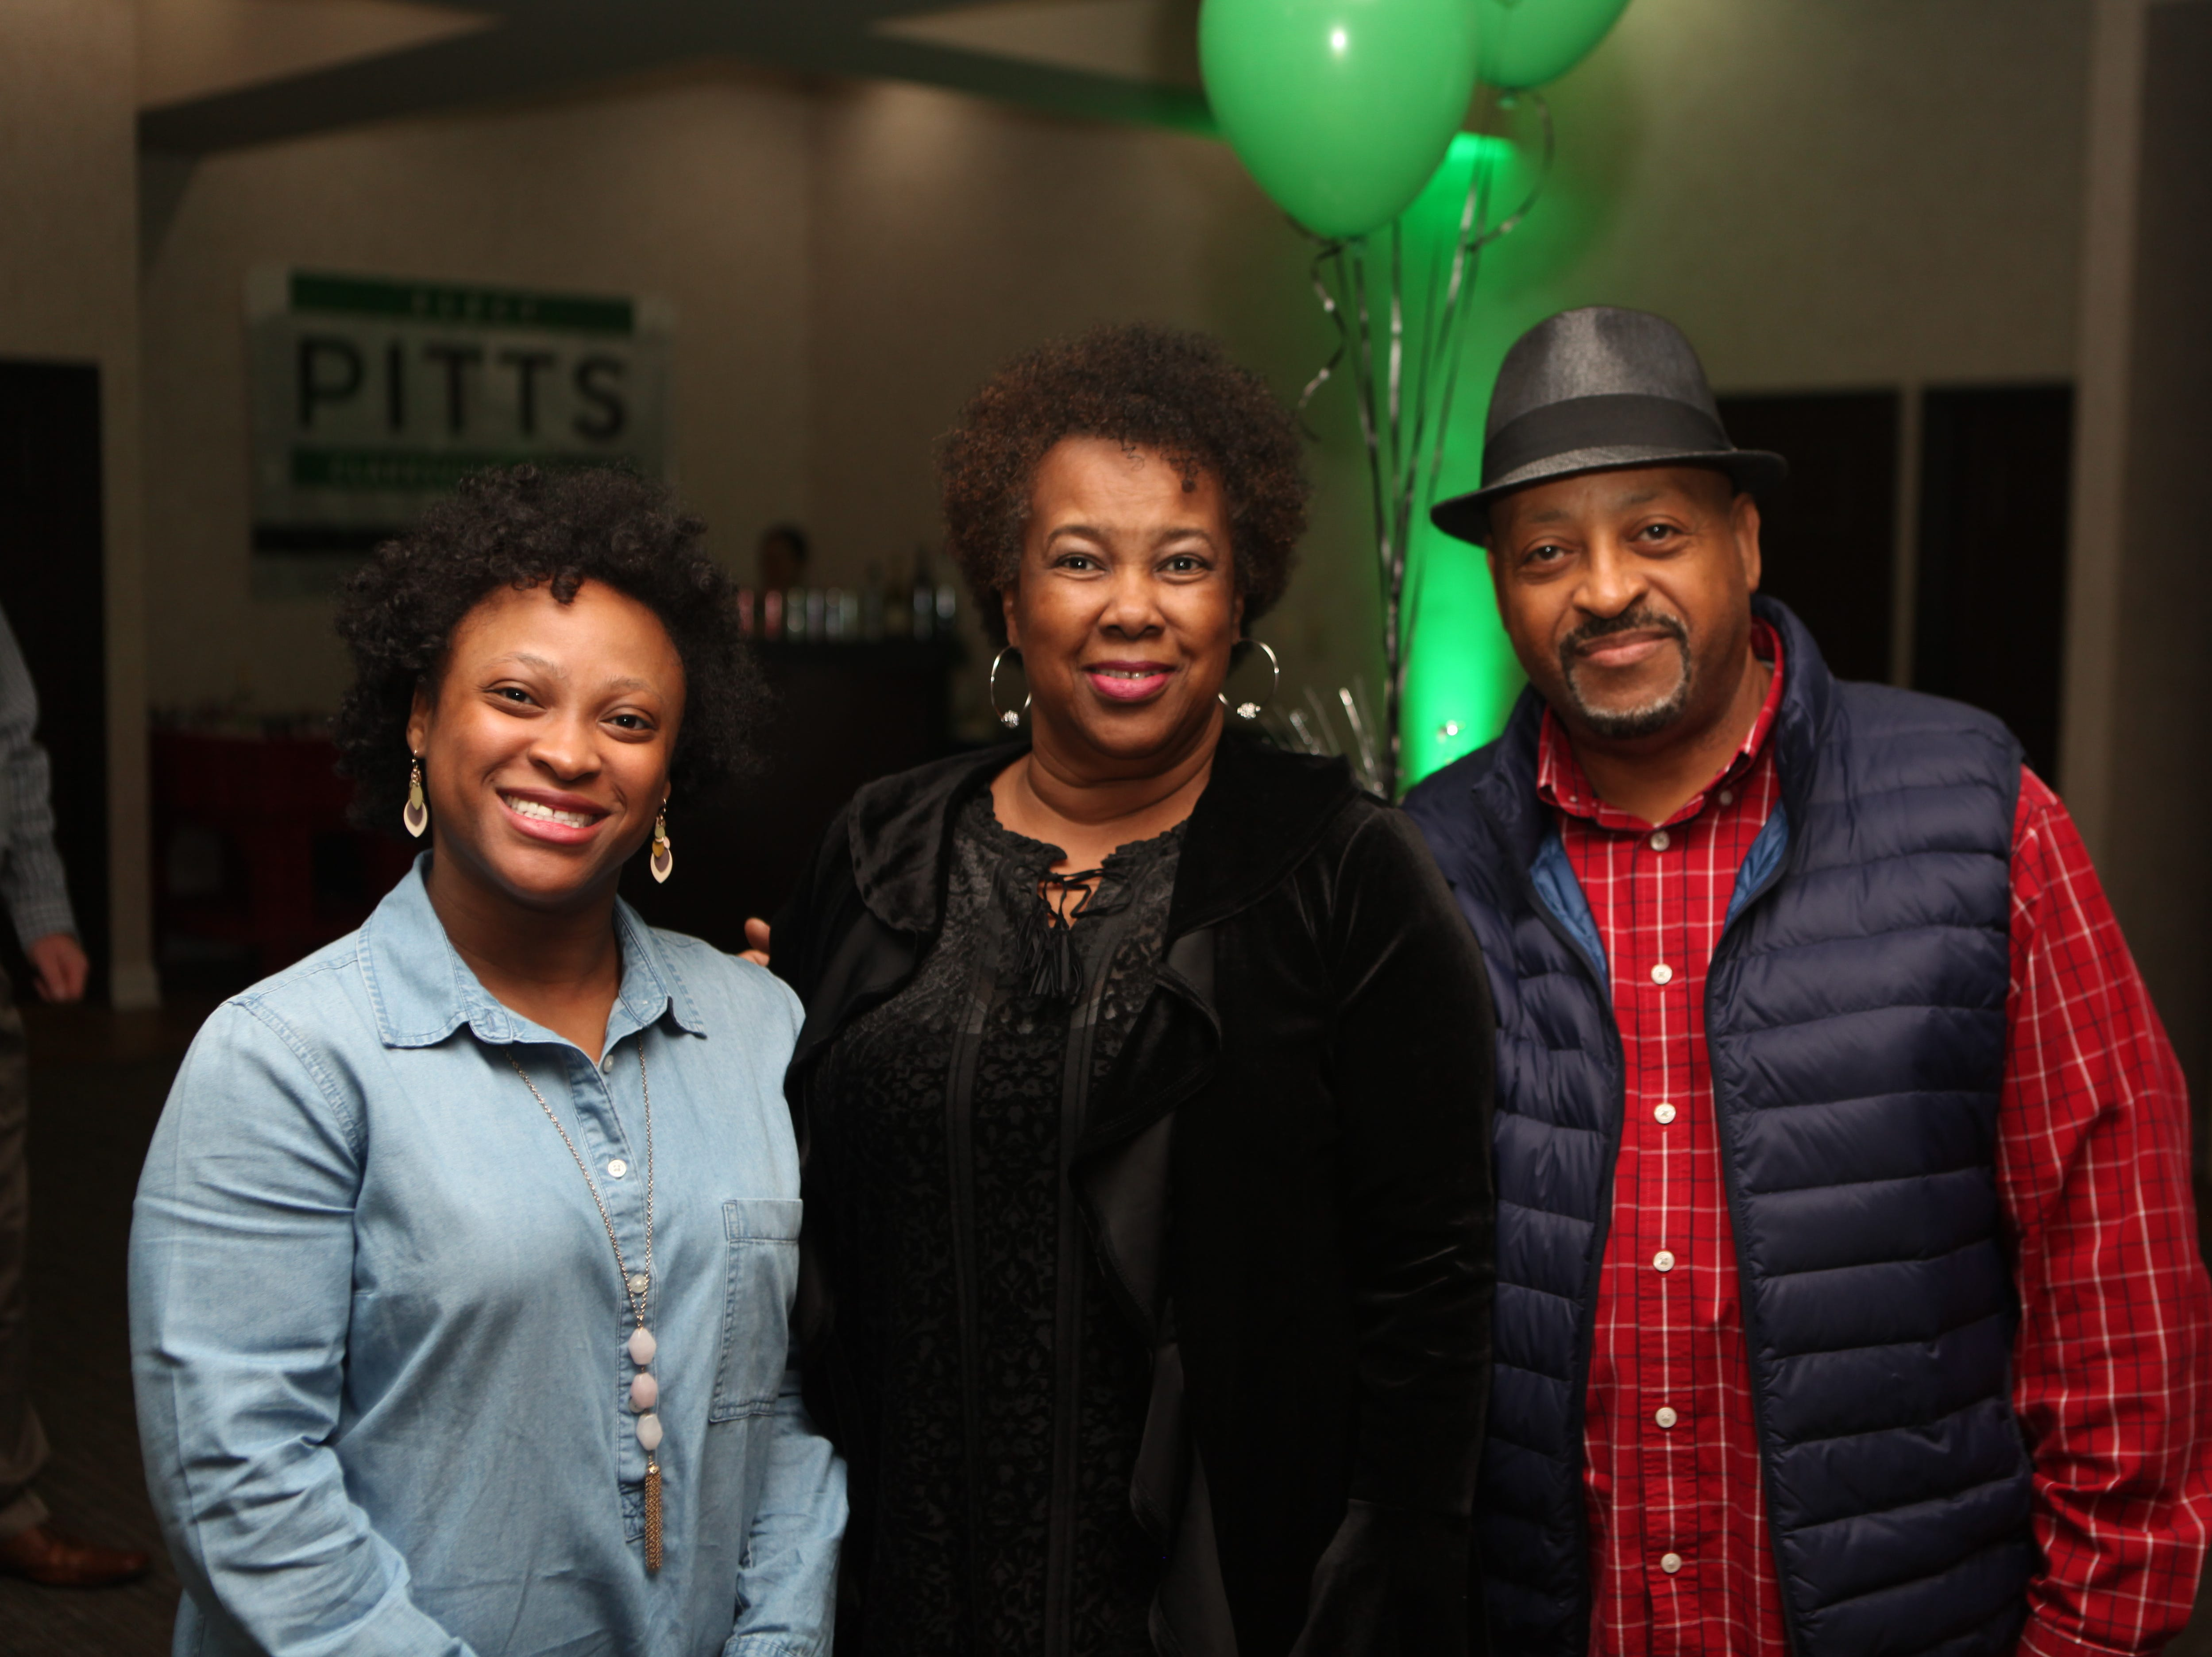 Hundreds came out to Riverview Inn Tuesday night for a watch party in support of Clarksville Mayoral candidate Joe Pitts.